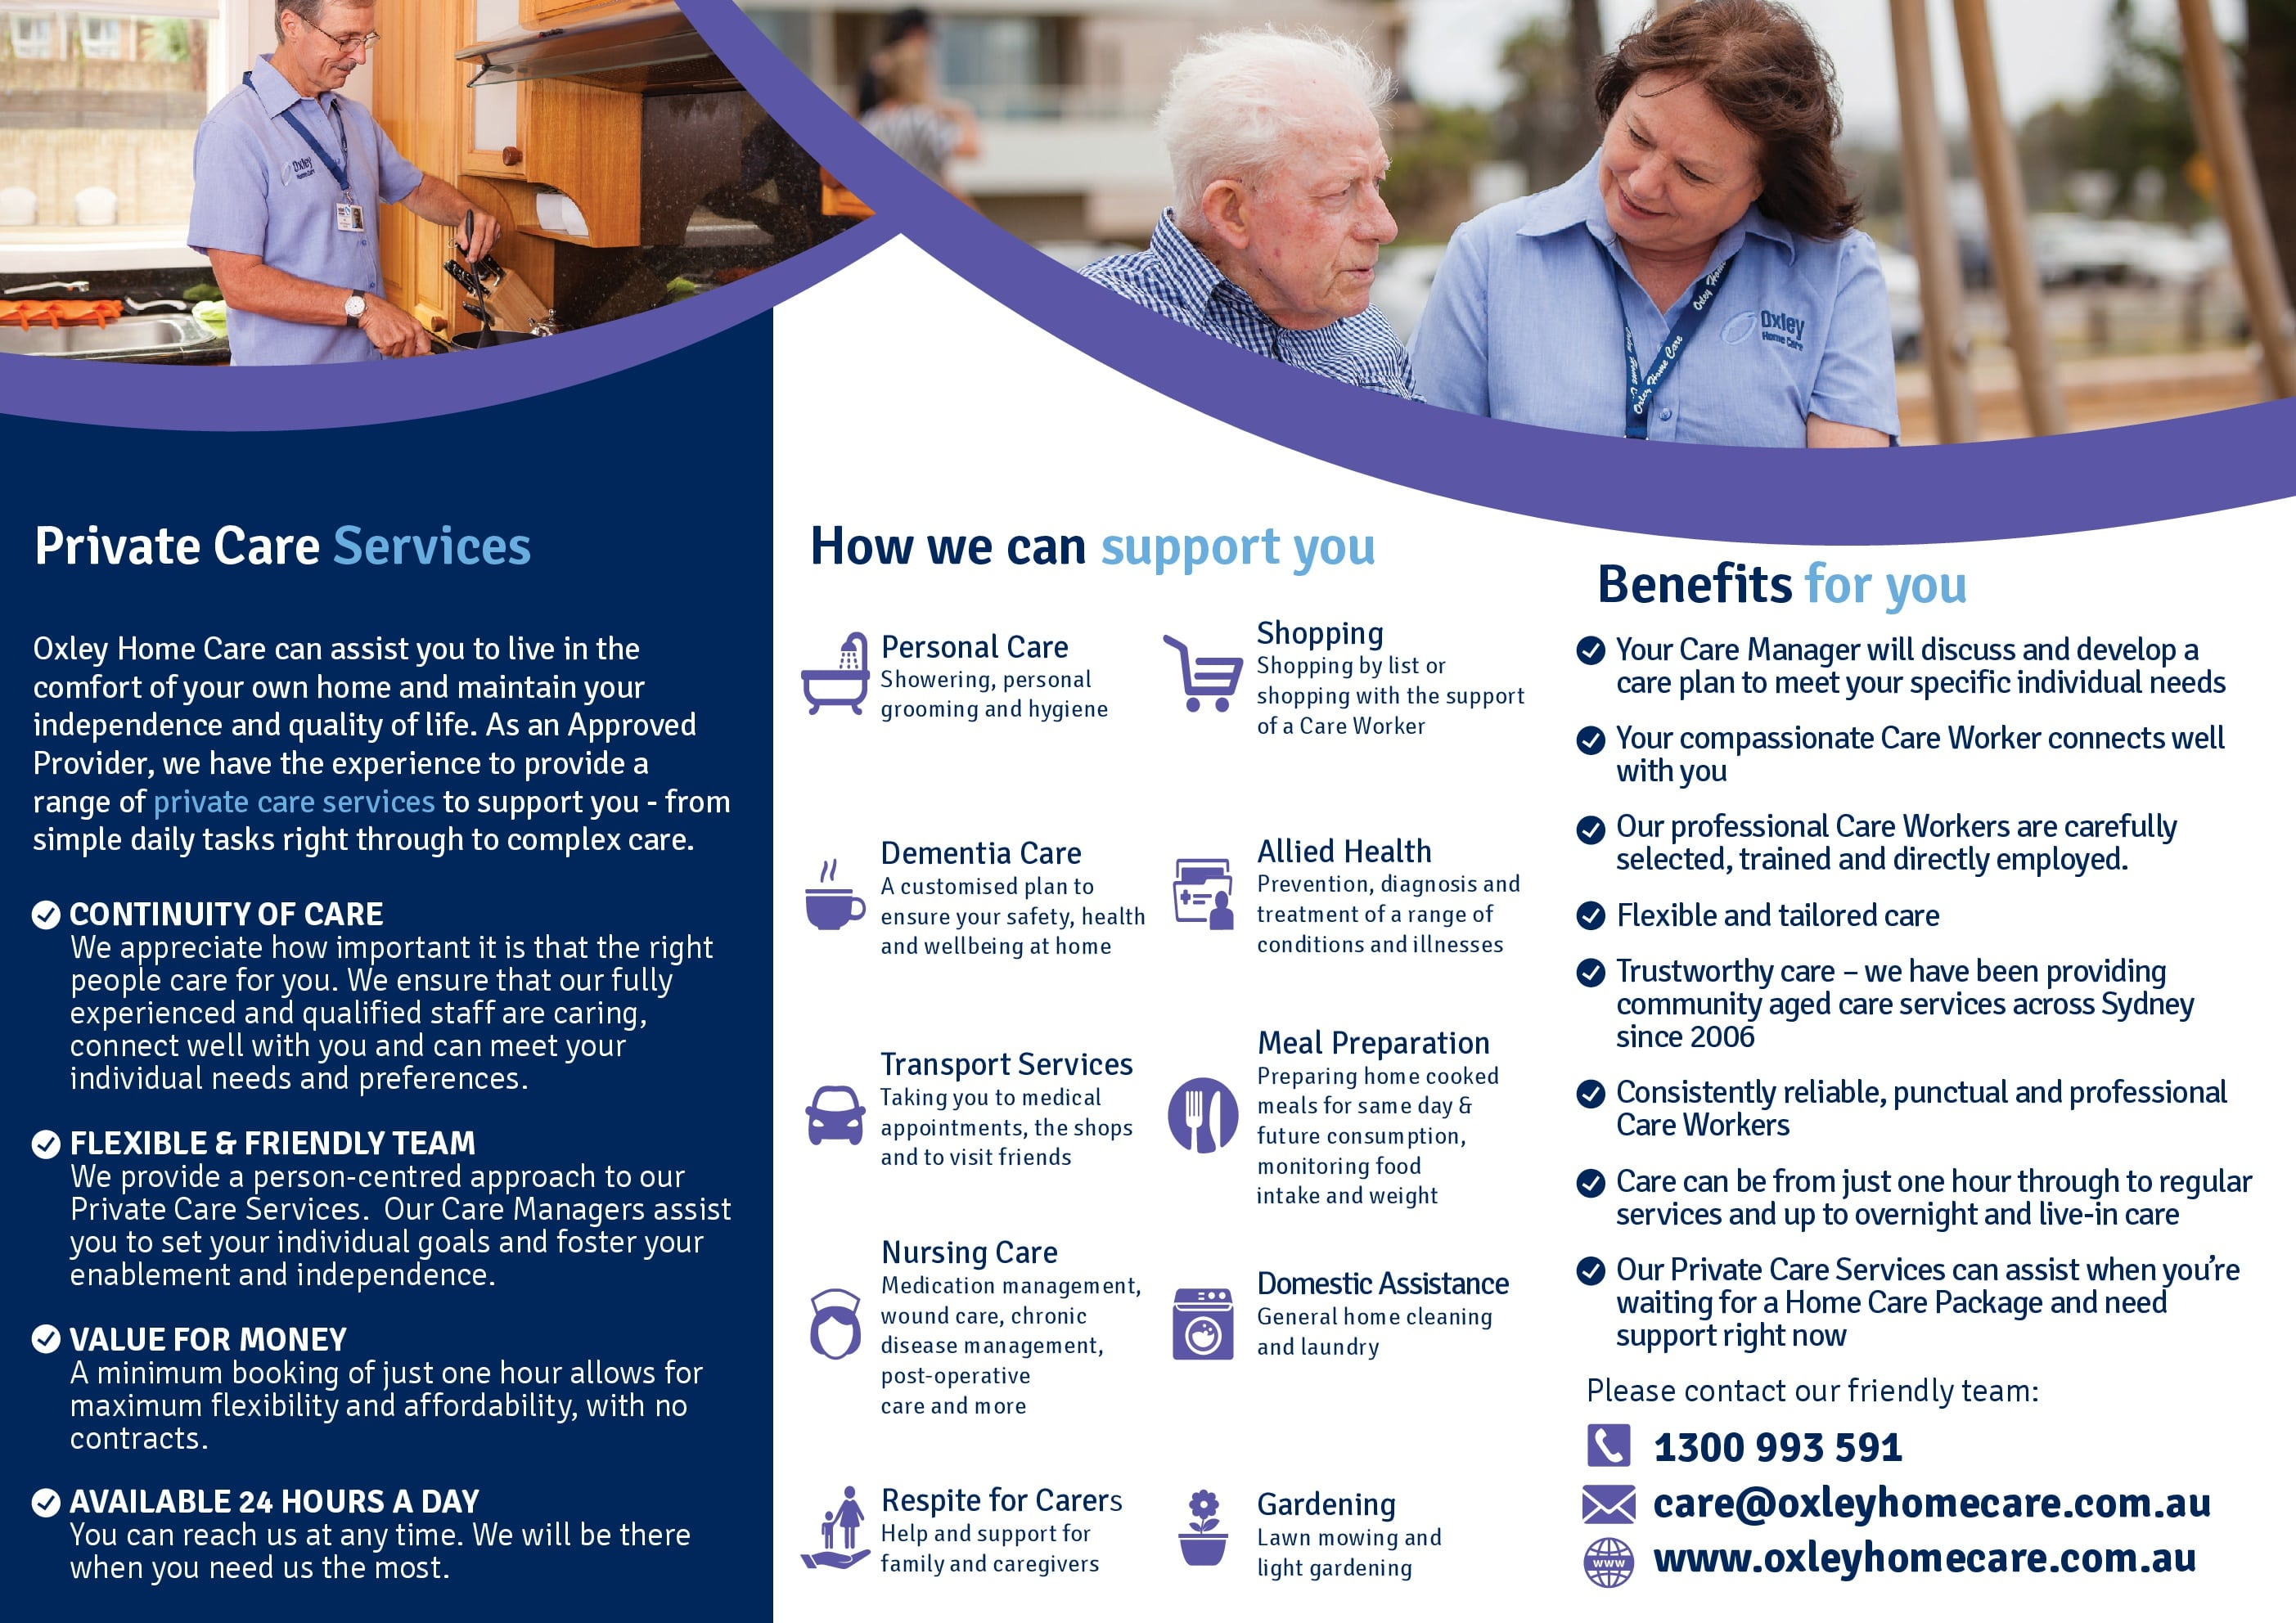 Oxley Home Care Private Care Services